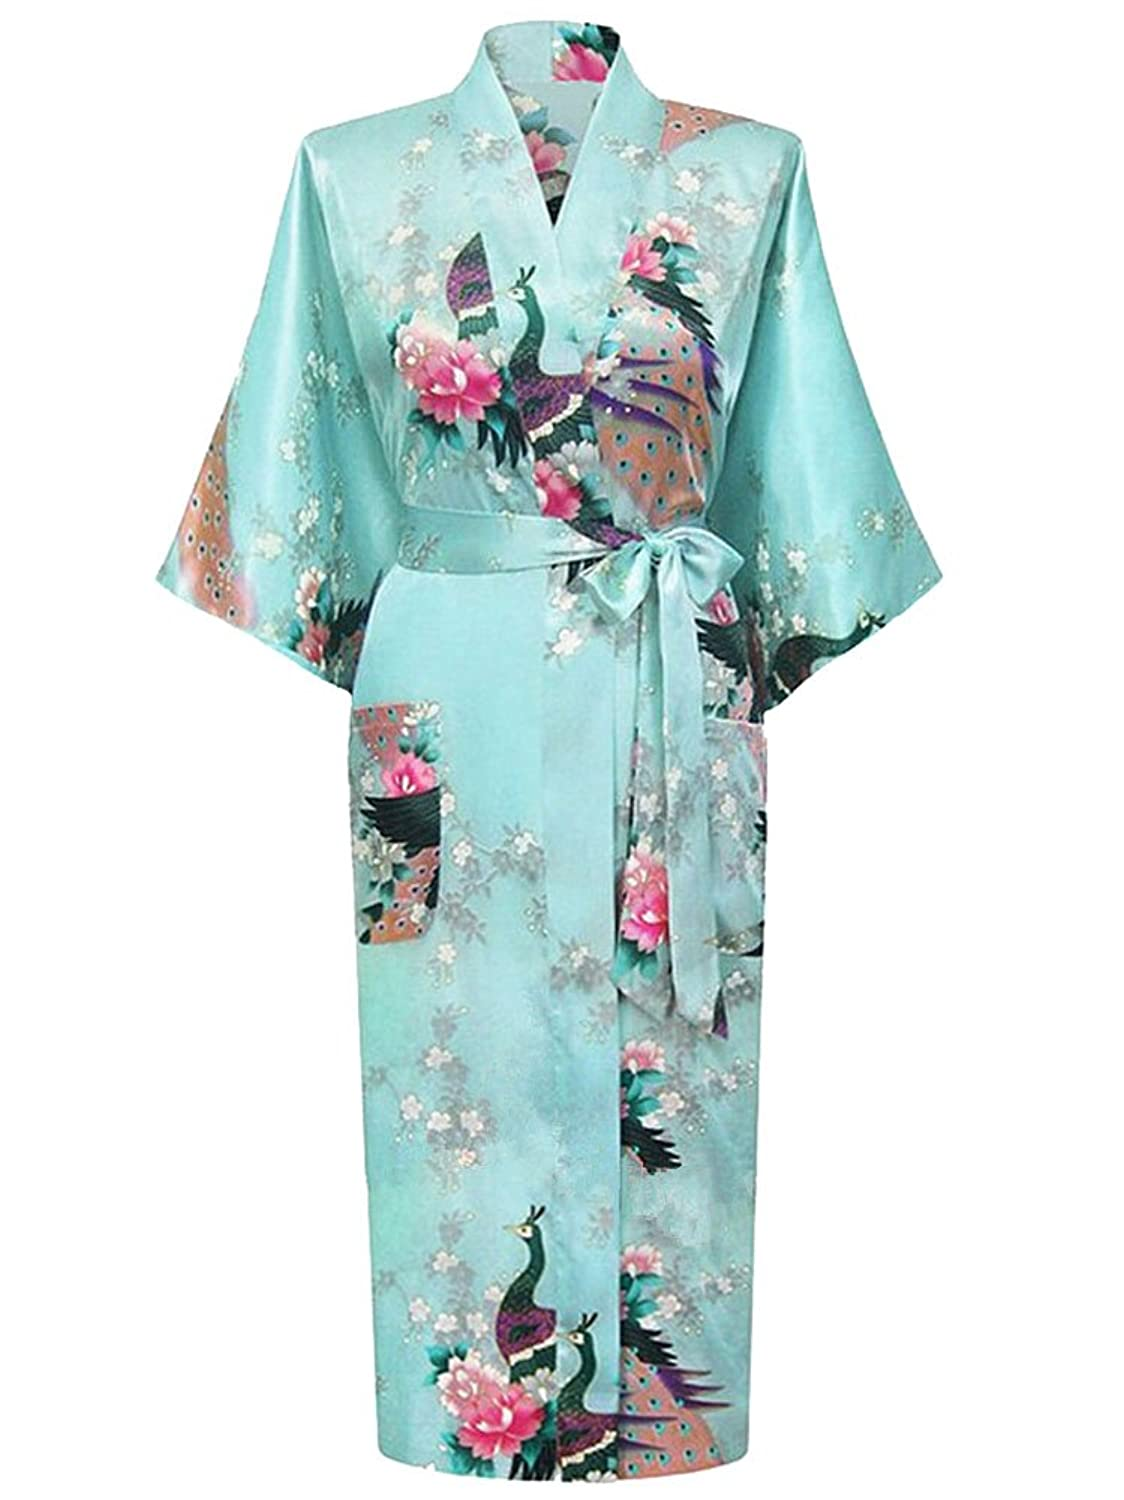 peignoir kimono long femme honoursport kimono japonais en satin sexy robe de chambre 1 2 manches. Black Bedroom Furniture Sets. Home Design Ideas